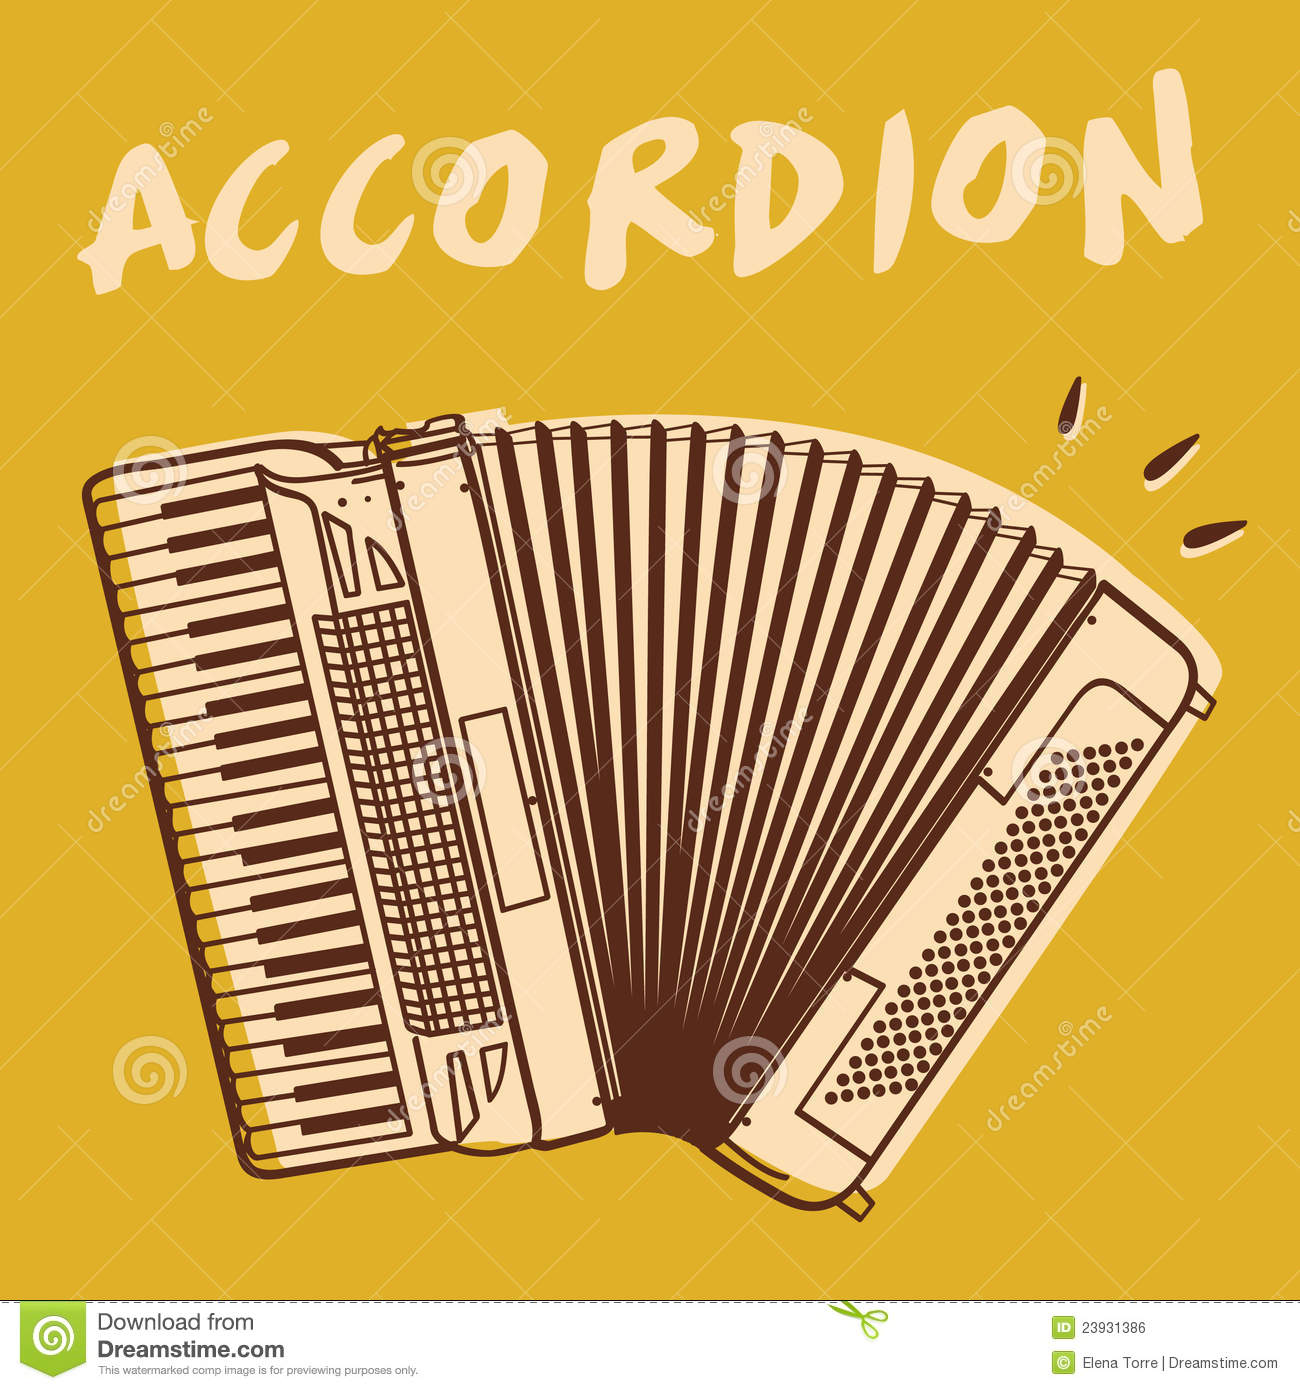 accordion vector stock vector  image of band  music  jazz